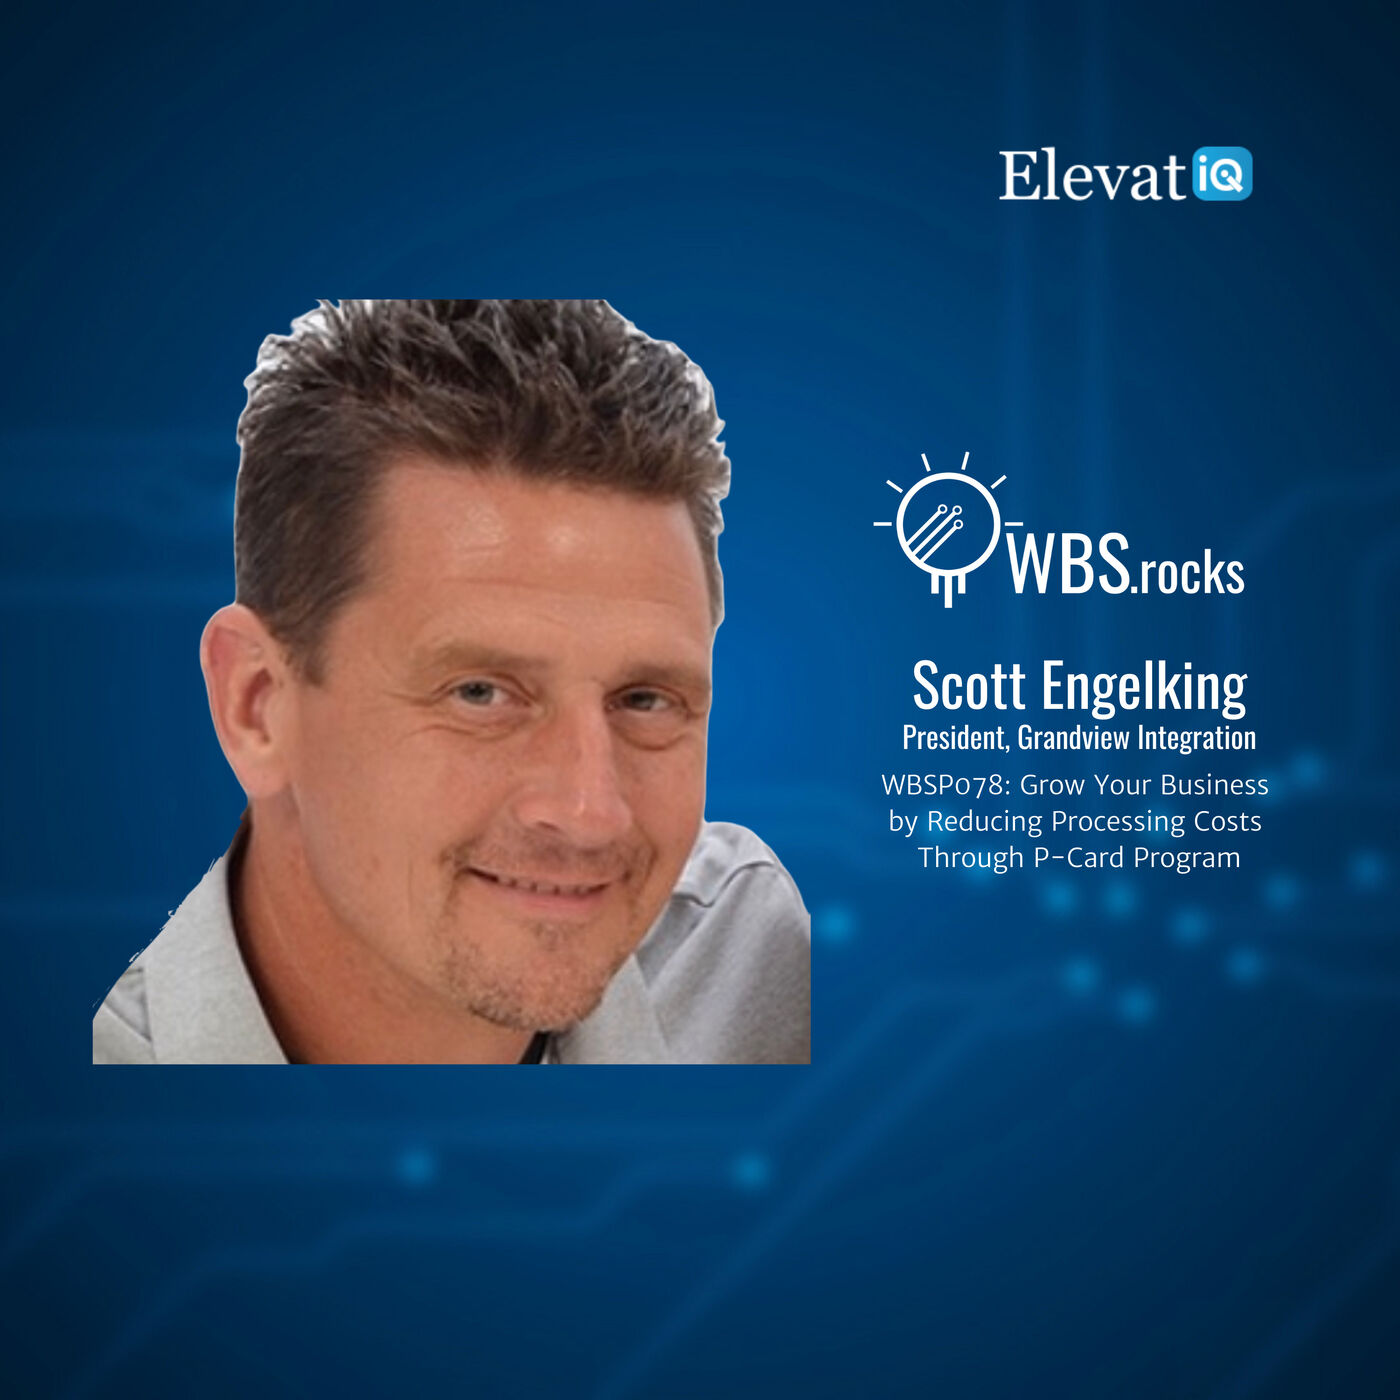 WBSP078: Grow Your Business by Reducing Processing Costs Through P-Card Program w/ Scott Engelking